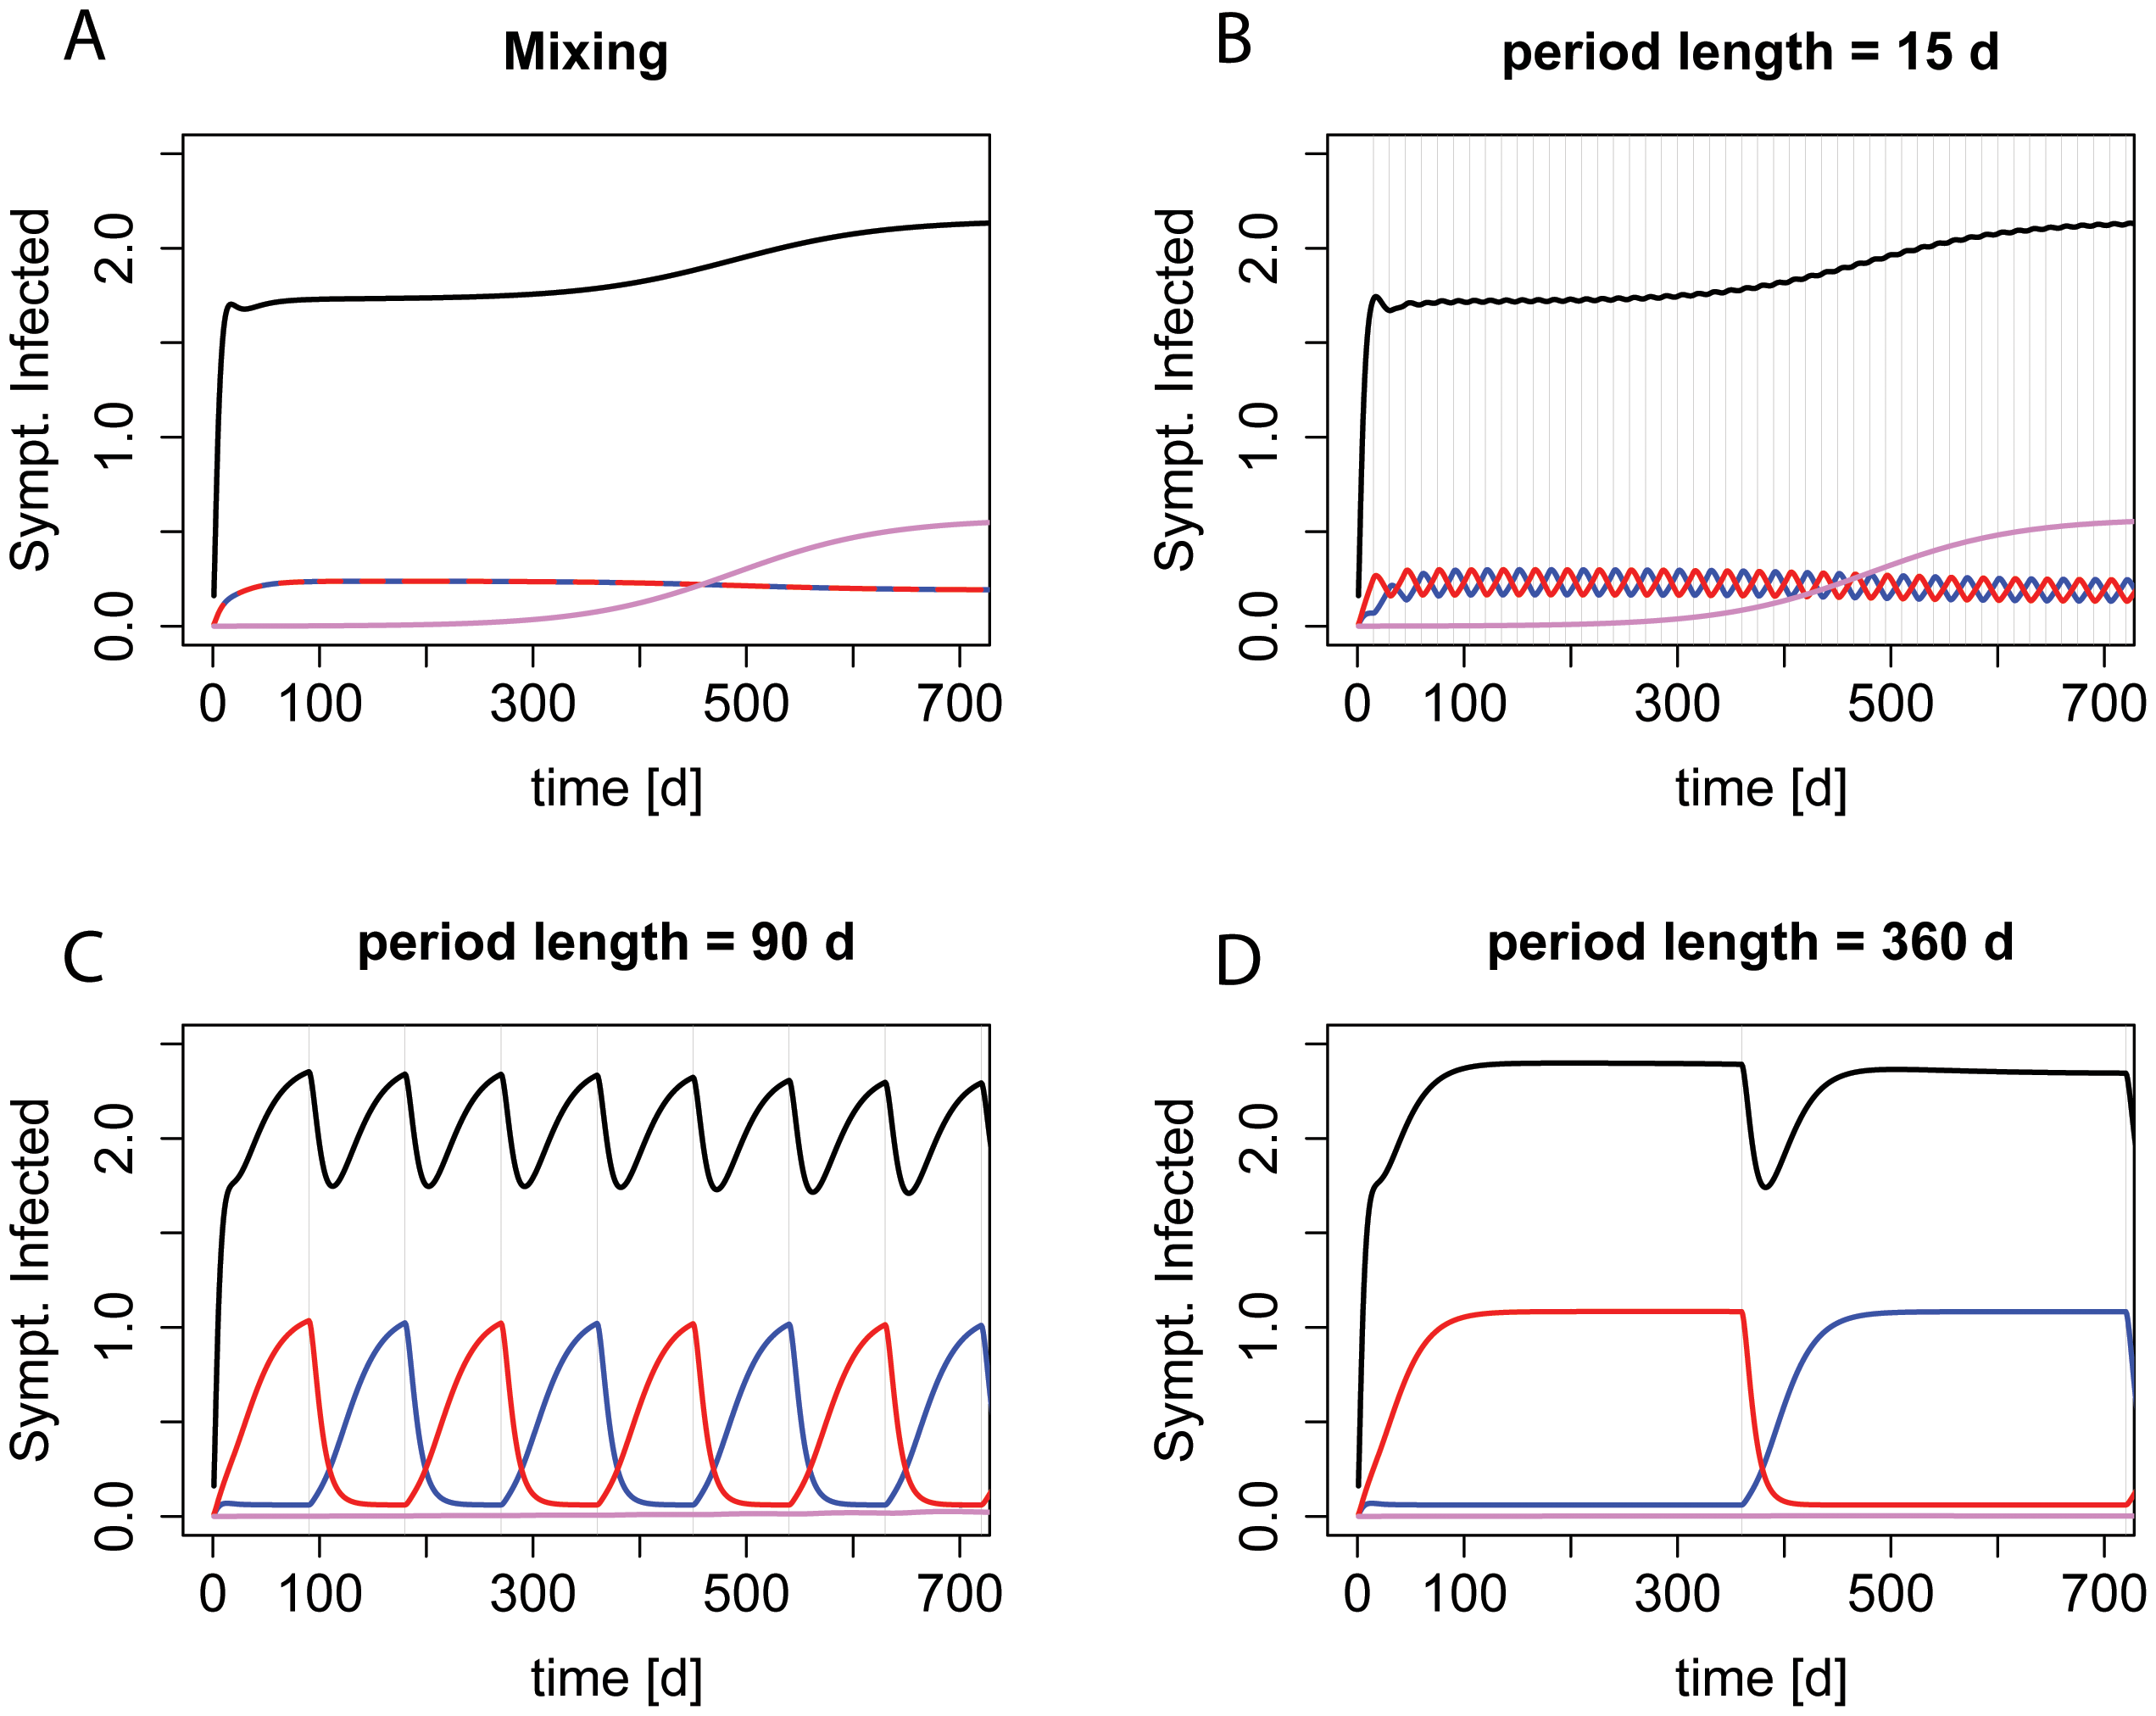 """Dynamics during """"adjustable mixing"""" and """"adjustable cycling"""" periods of different length."""